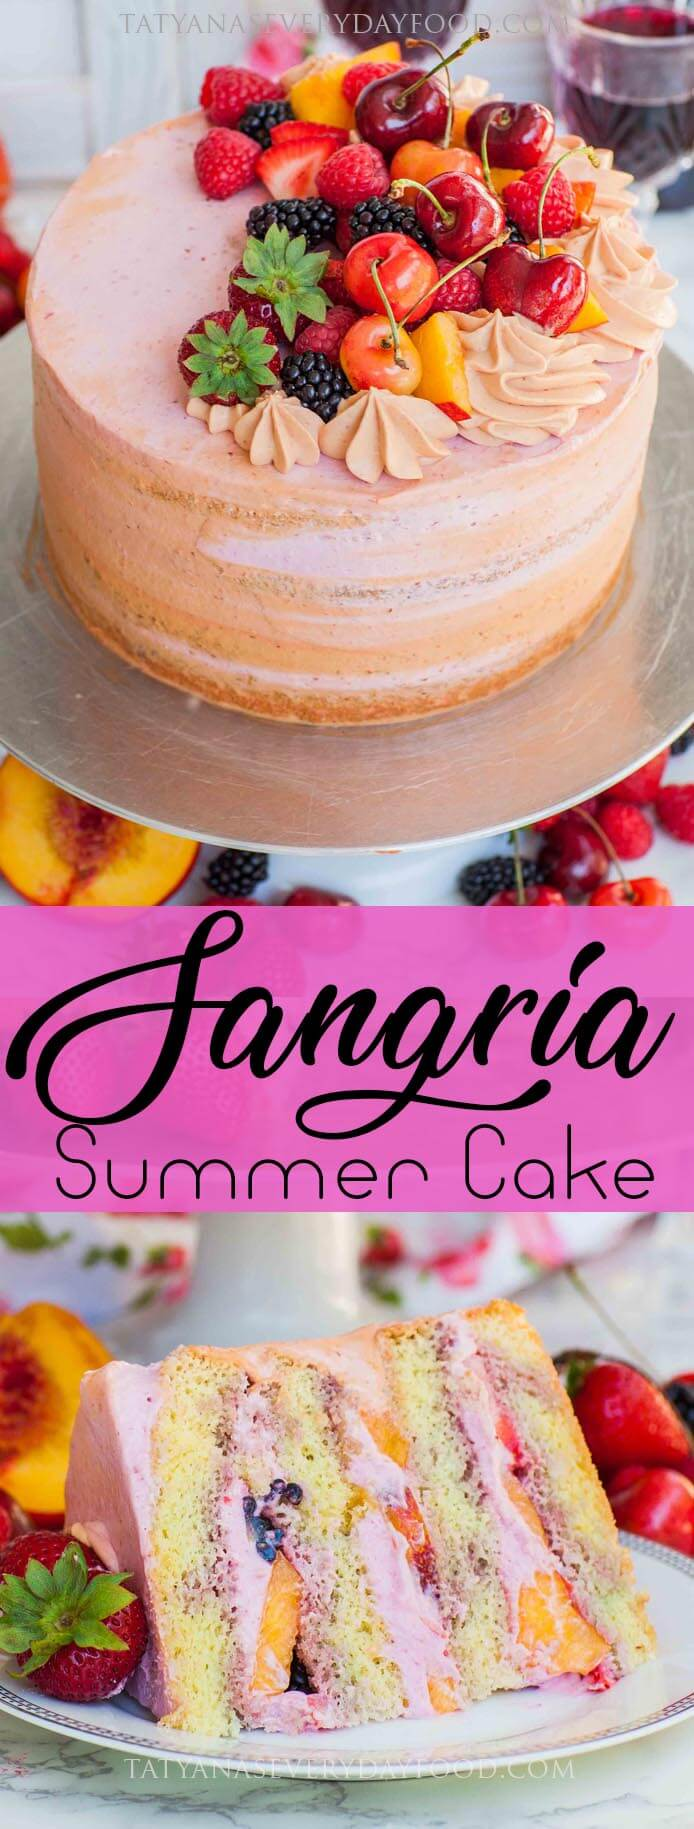 Sangria Cake with fresh fruit and whipped cream frosting